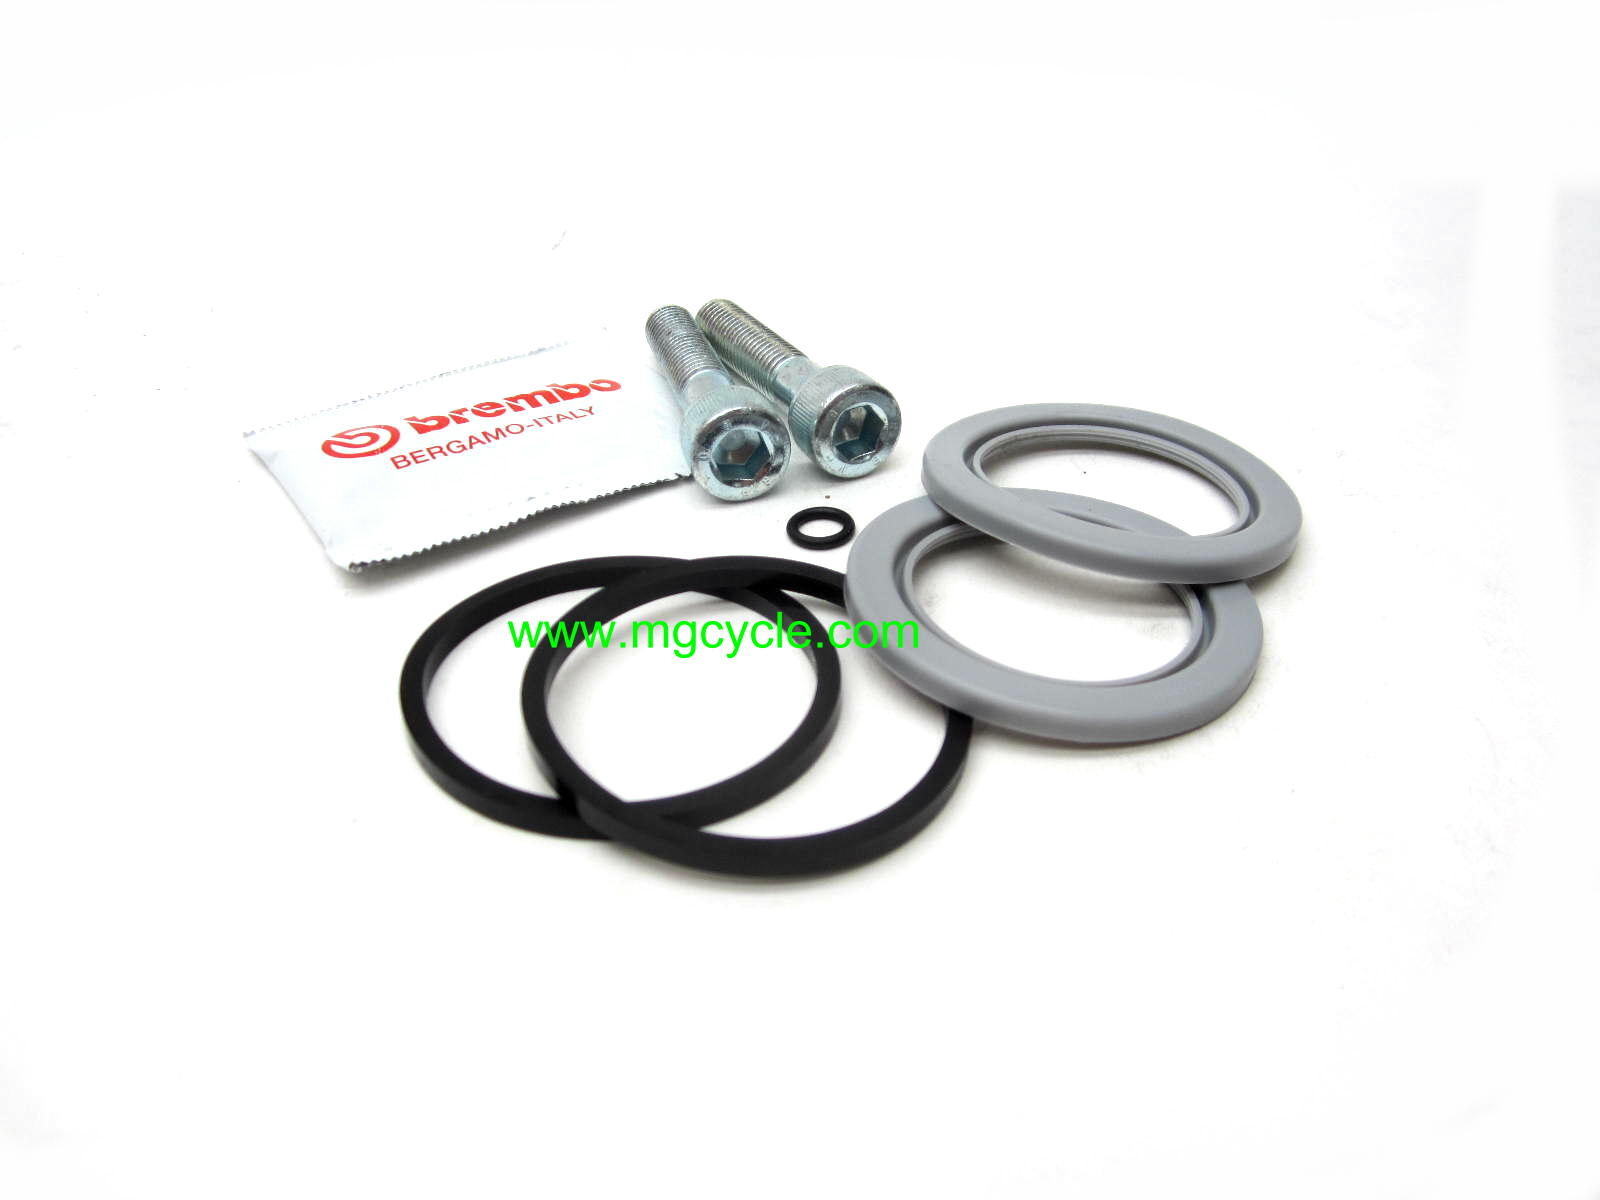 hight resolution of brembo caliper seal kit for f09 caliper rear sp1000